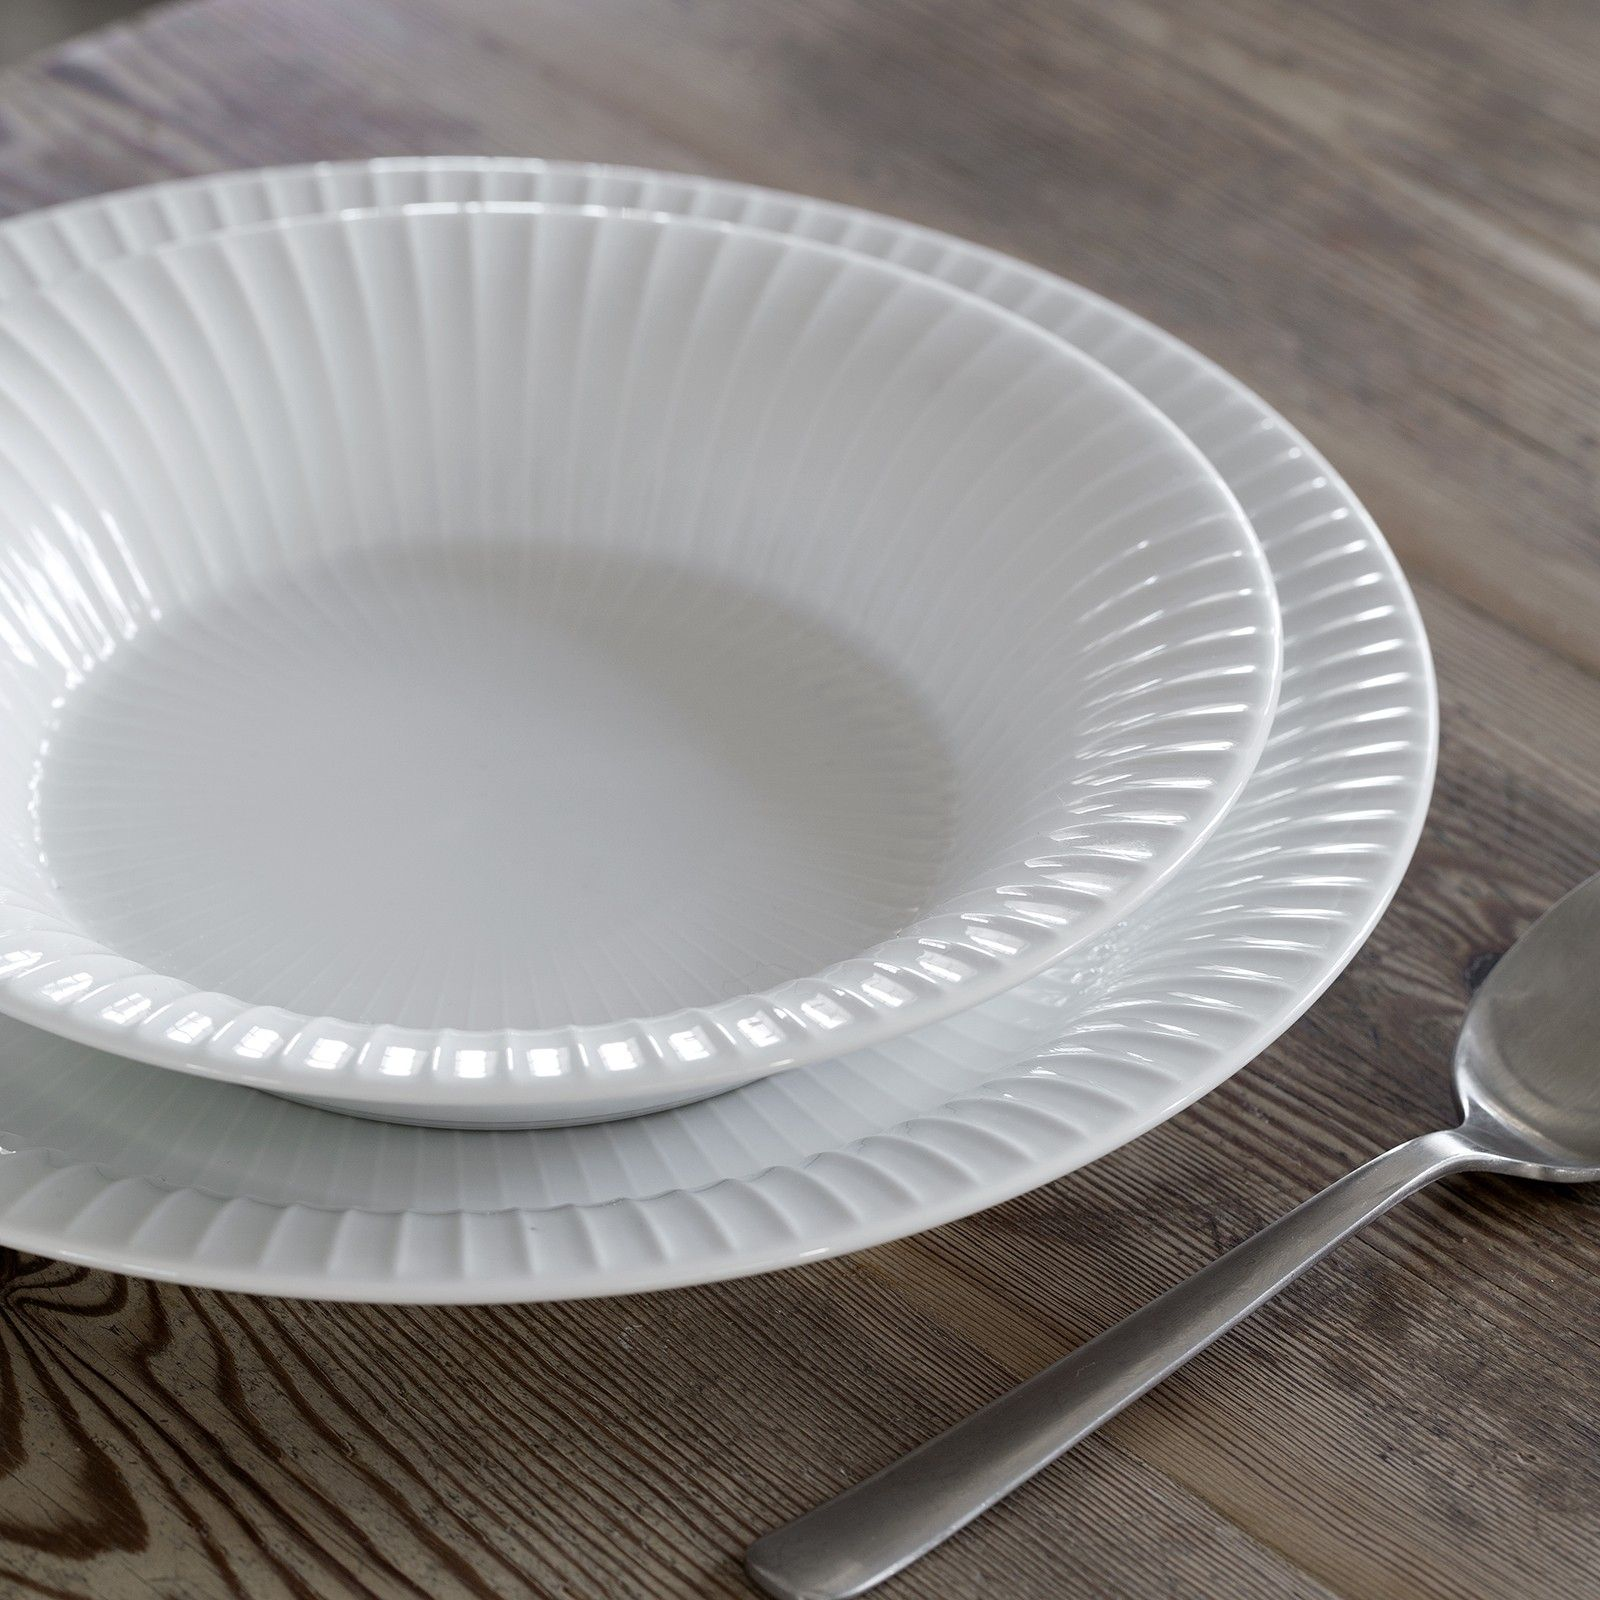 The stylish Hammershøi tableware has a classic look and can be used as everyday tableware year & The stylish Hammershøi tableware has a classic look and can be used ...